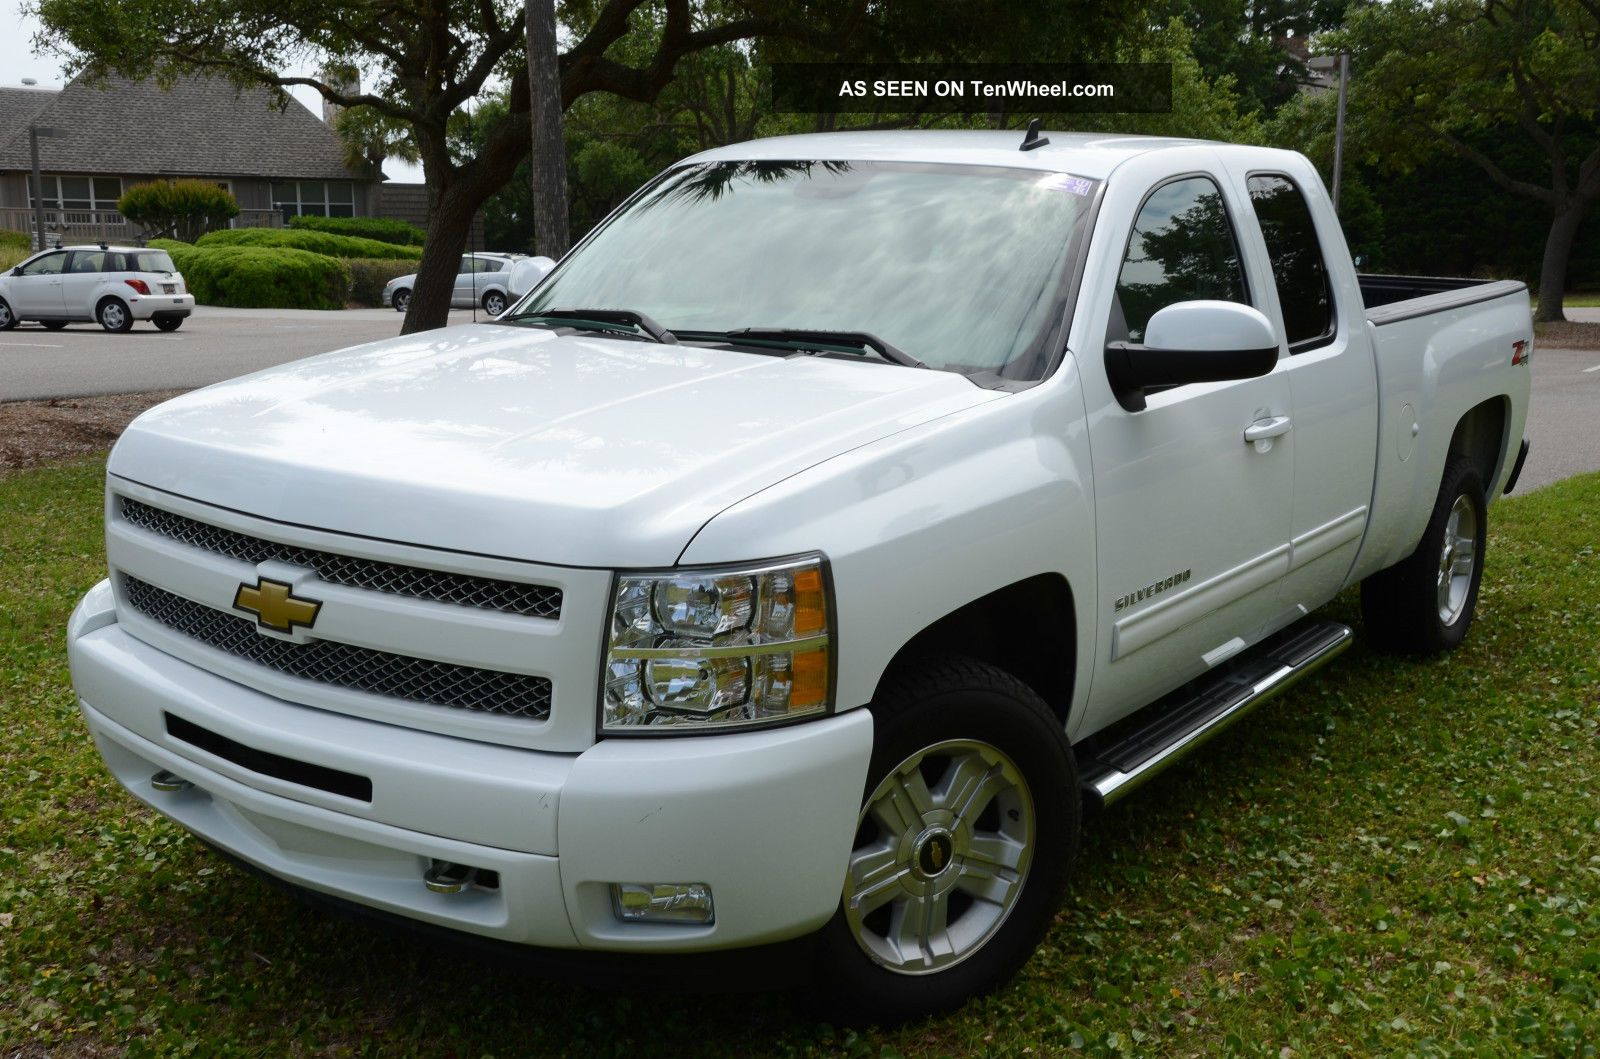 2010 chevrolet silverado z71. Black Bedroom Furniture Sets. Home Design Ideas